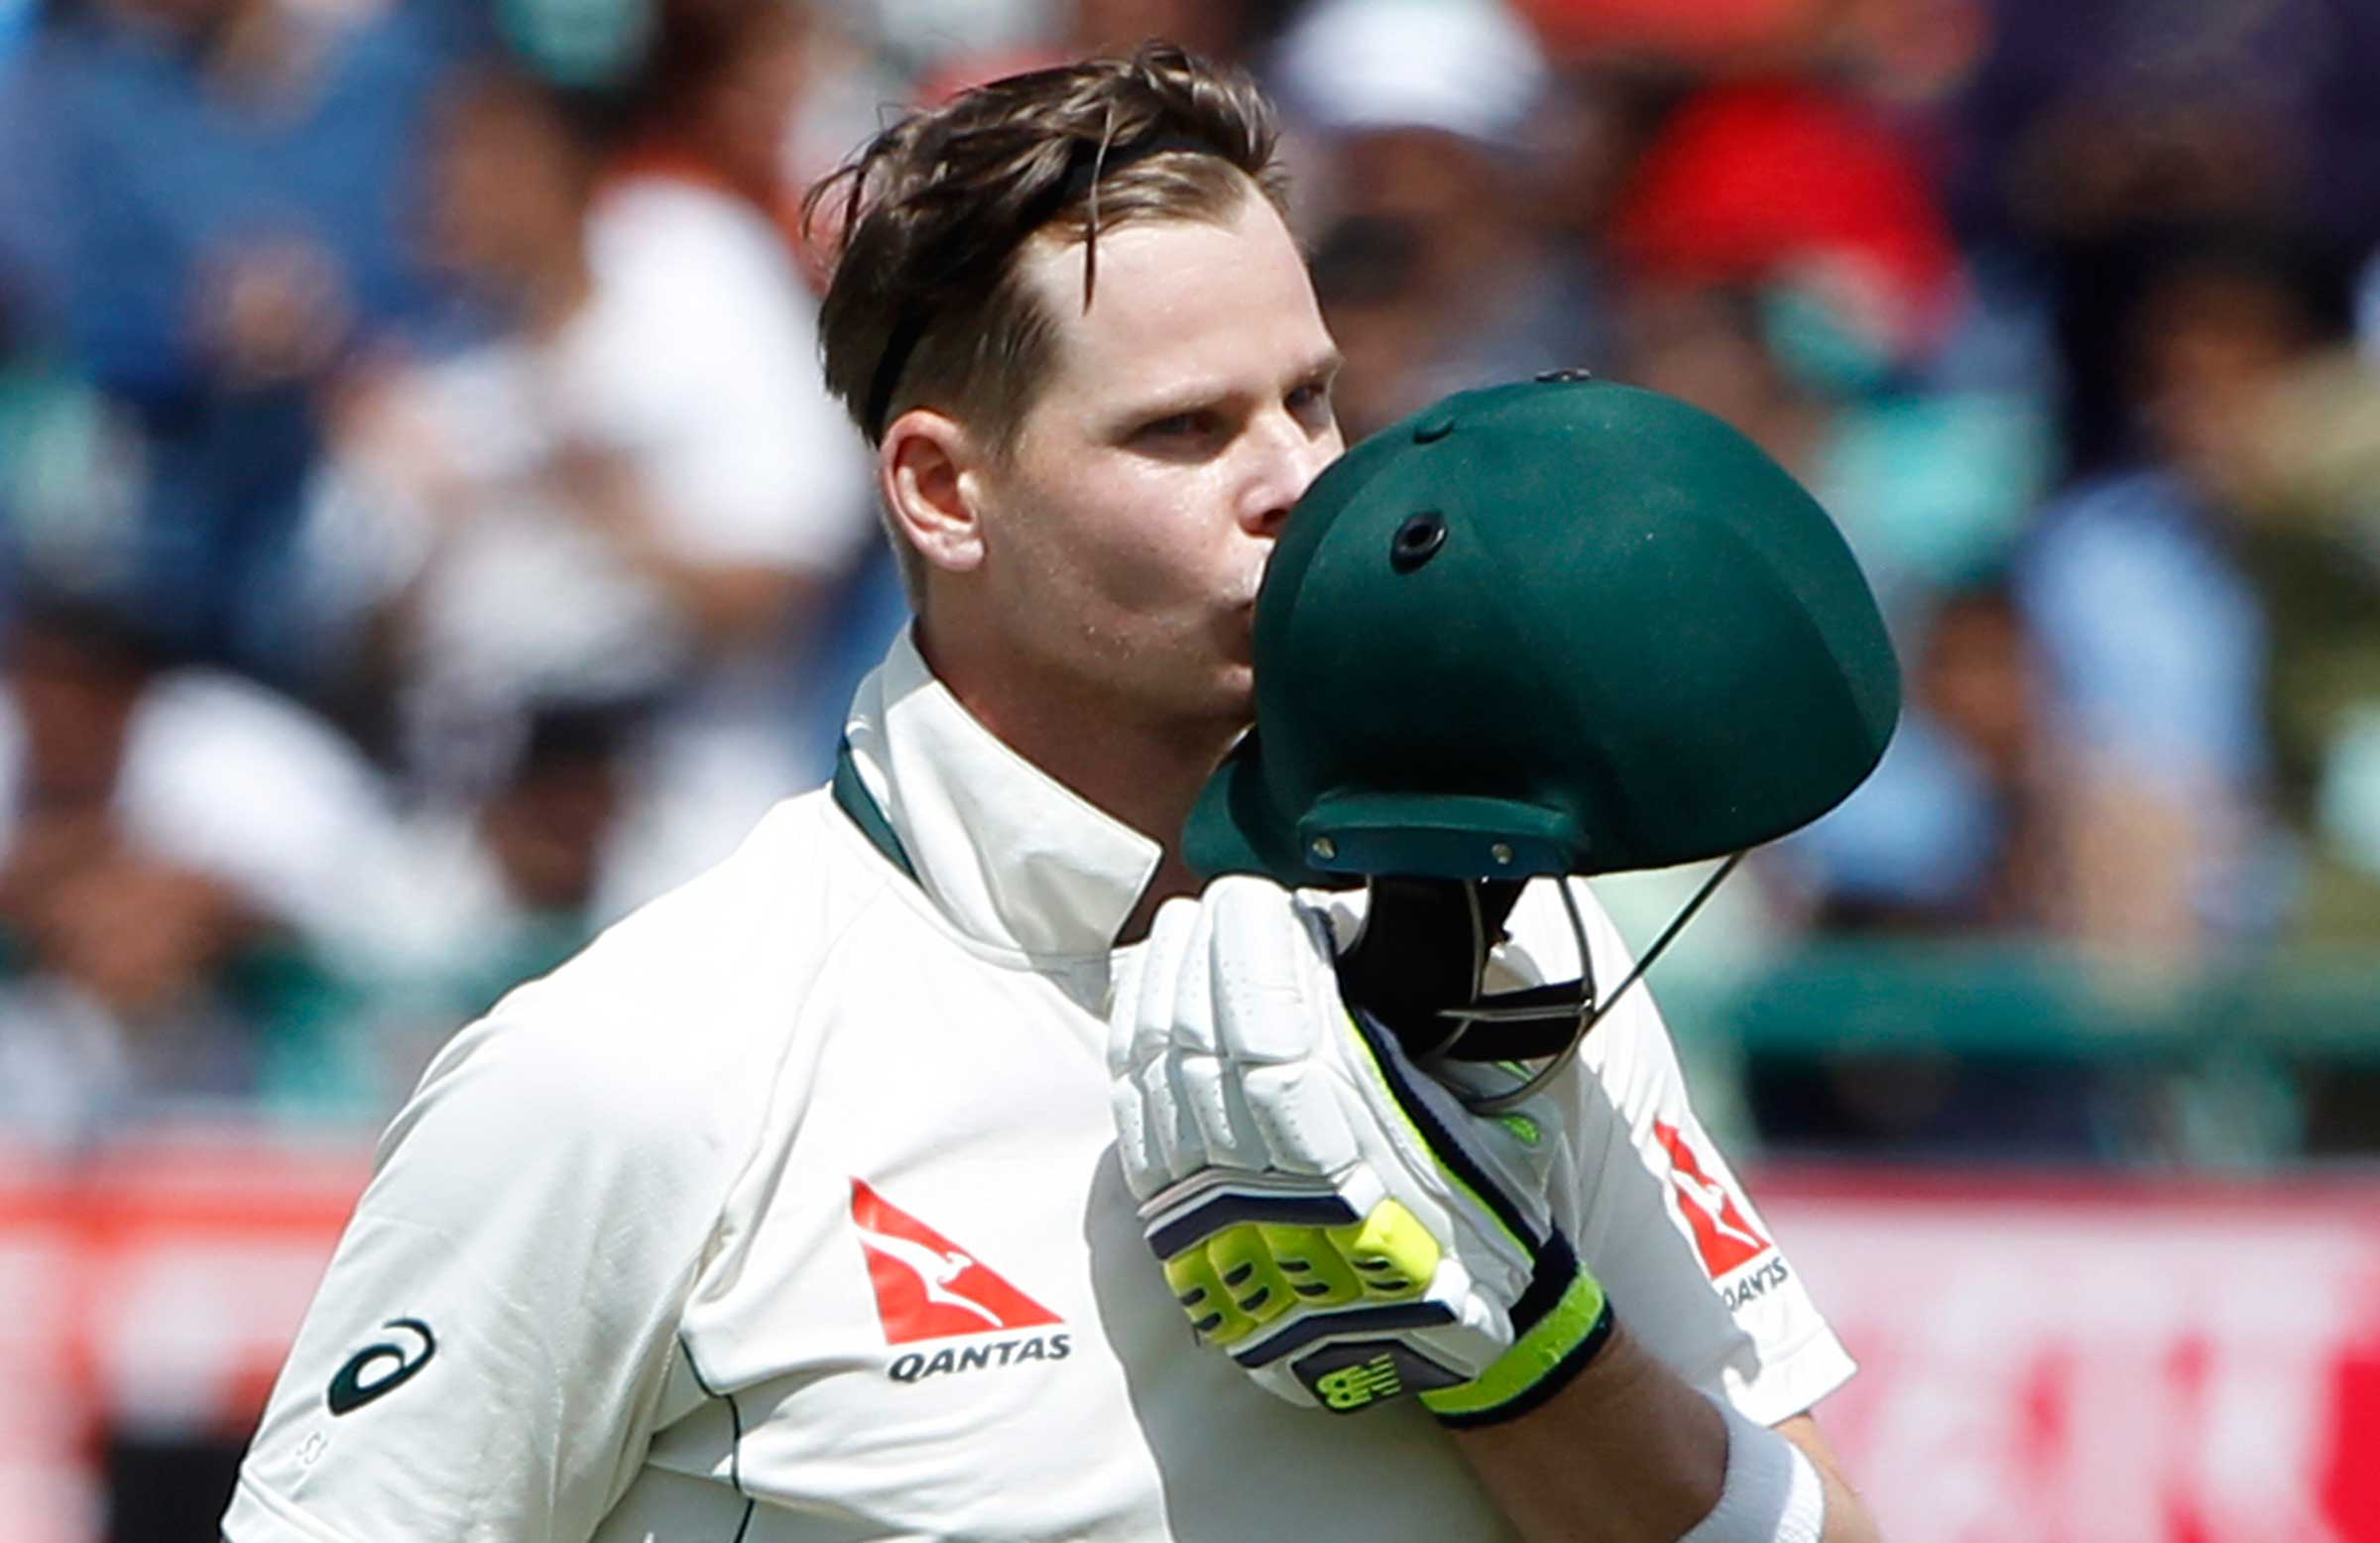 AUSTRALIA V INDIA TESTS                 Smith scales new heights with latest ton        25 March 2017